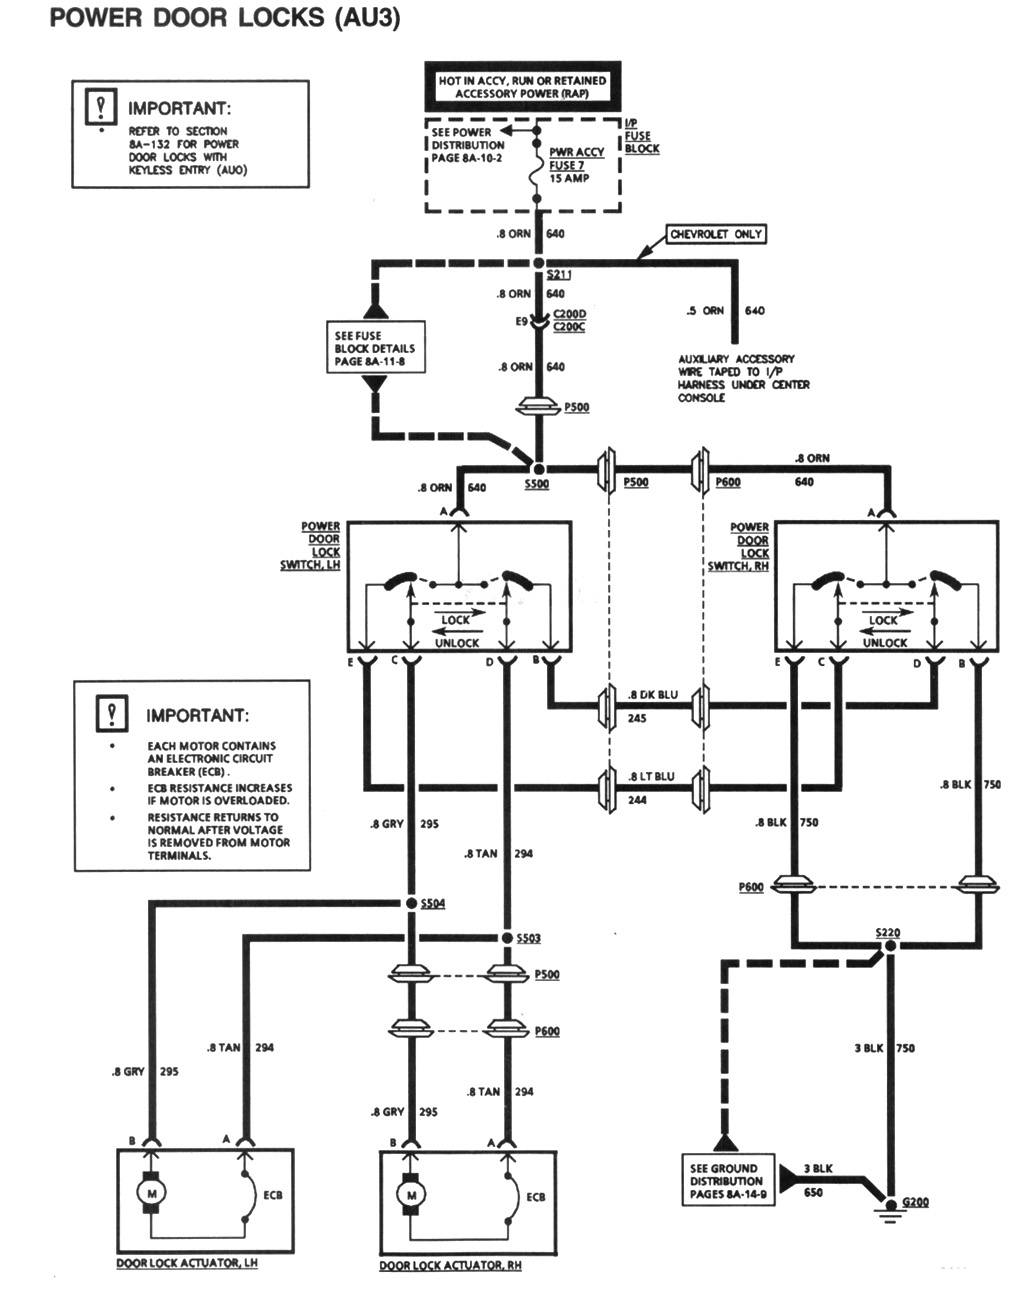 Power locks wiring diagram for 1995 chevy wiring diagrams schematics rh guilhermecosta co 2002 chevy silverado